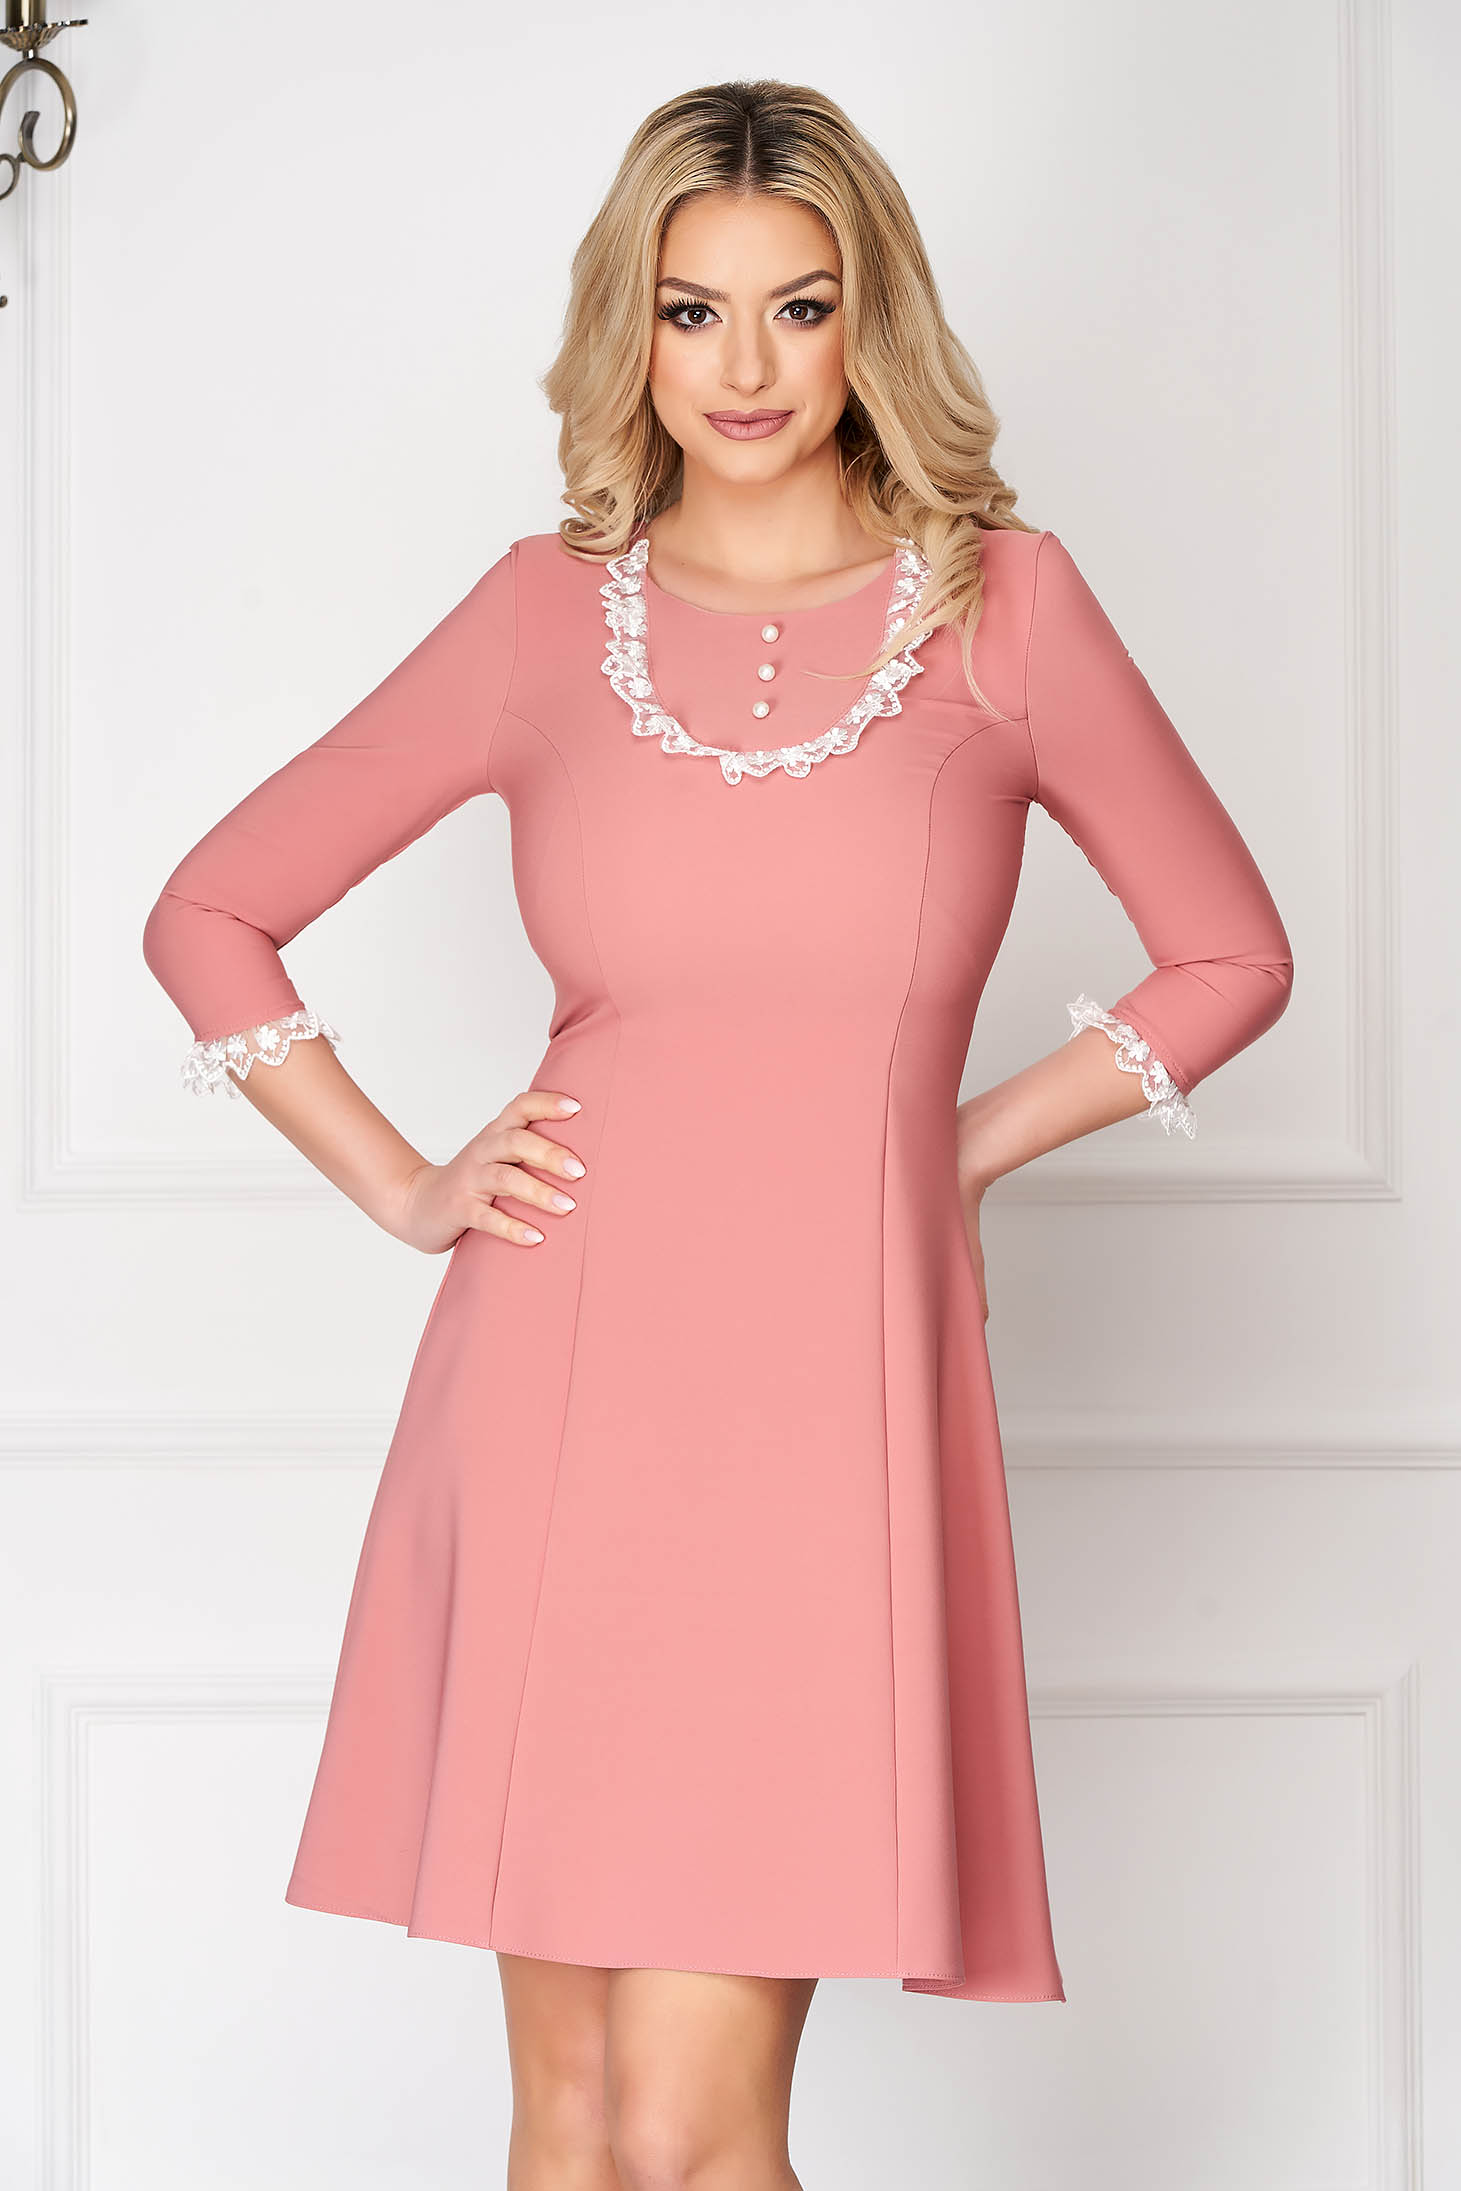 Dress StarShinerS lightpink elegant short cut with lace details cloth